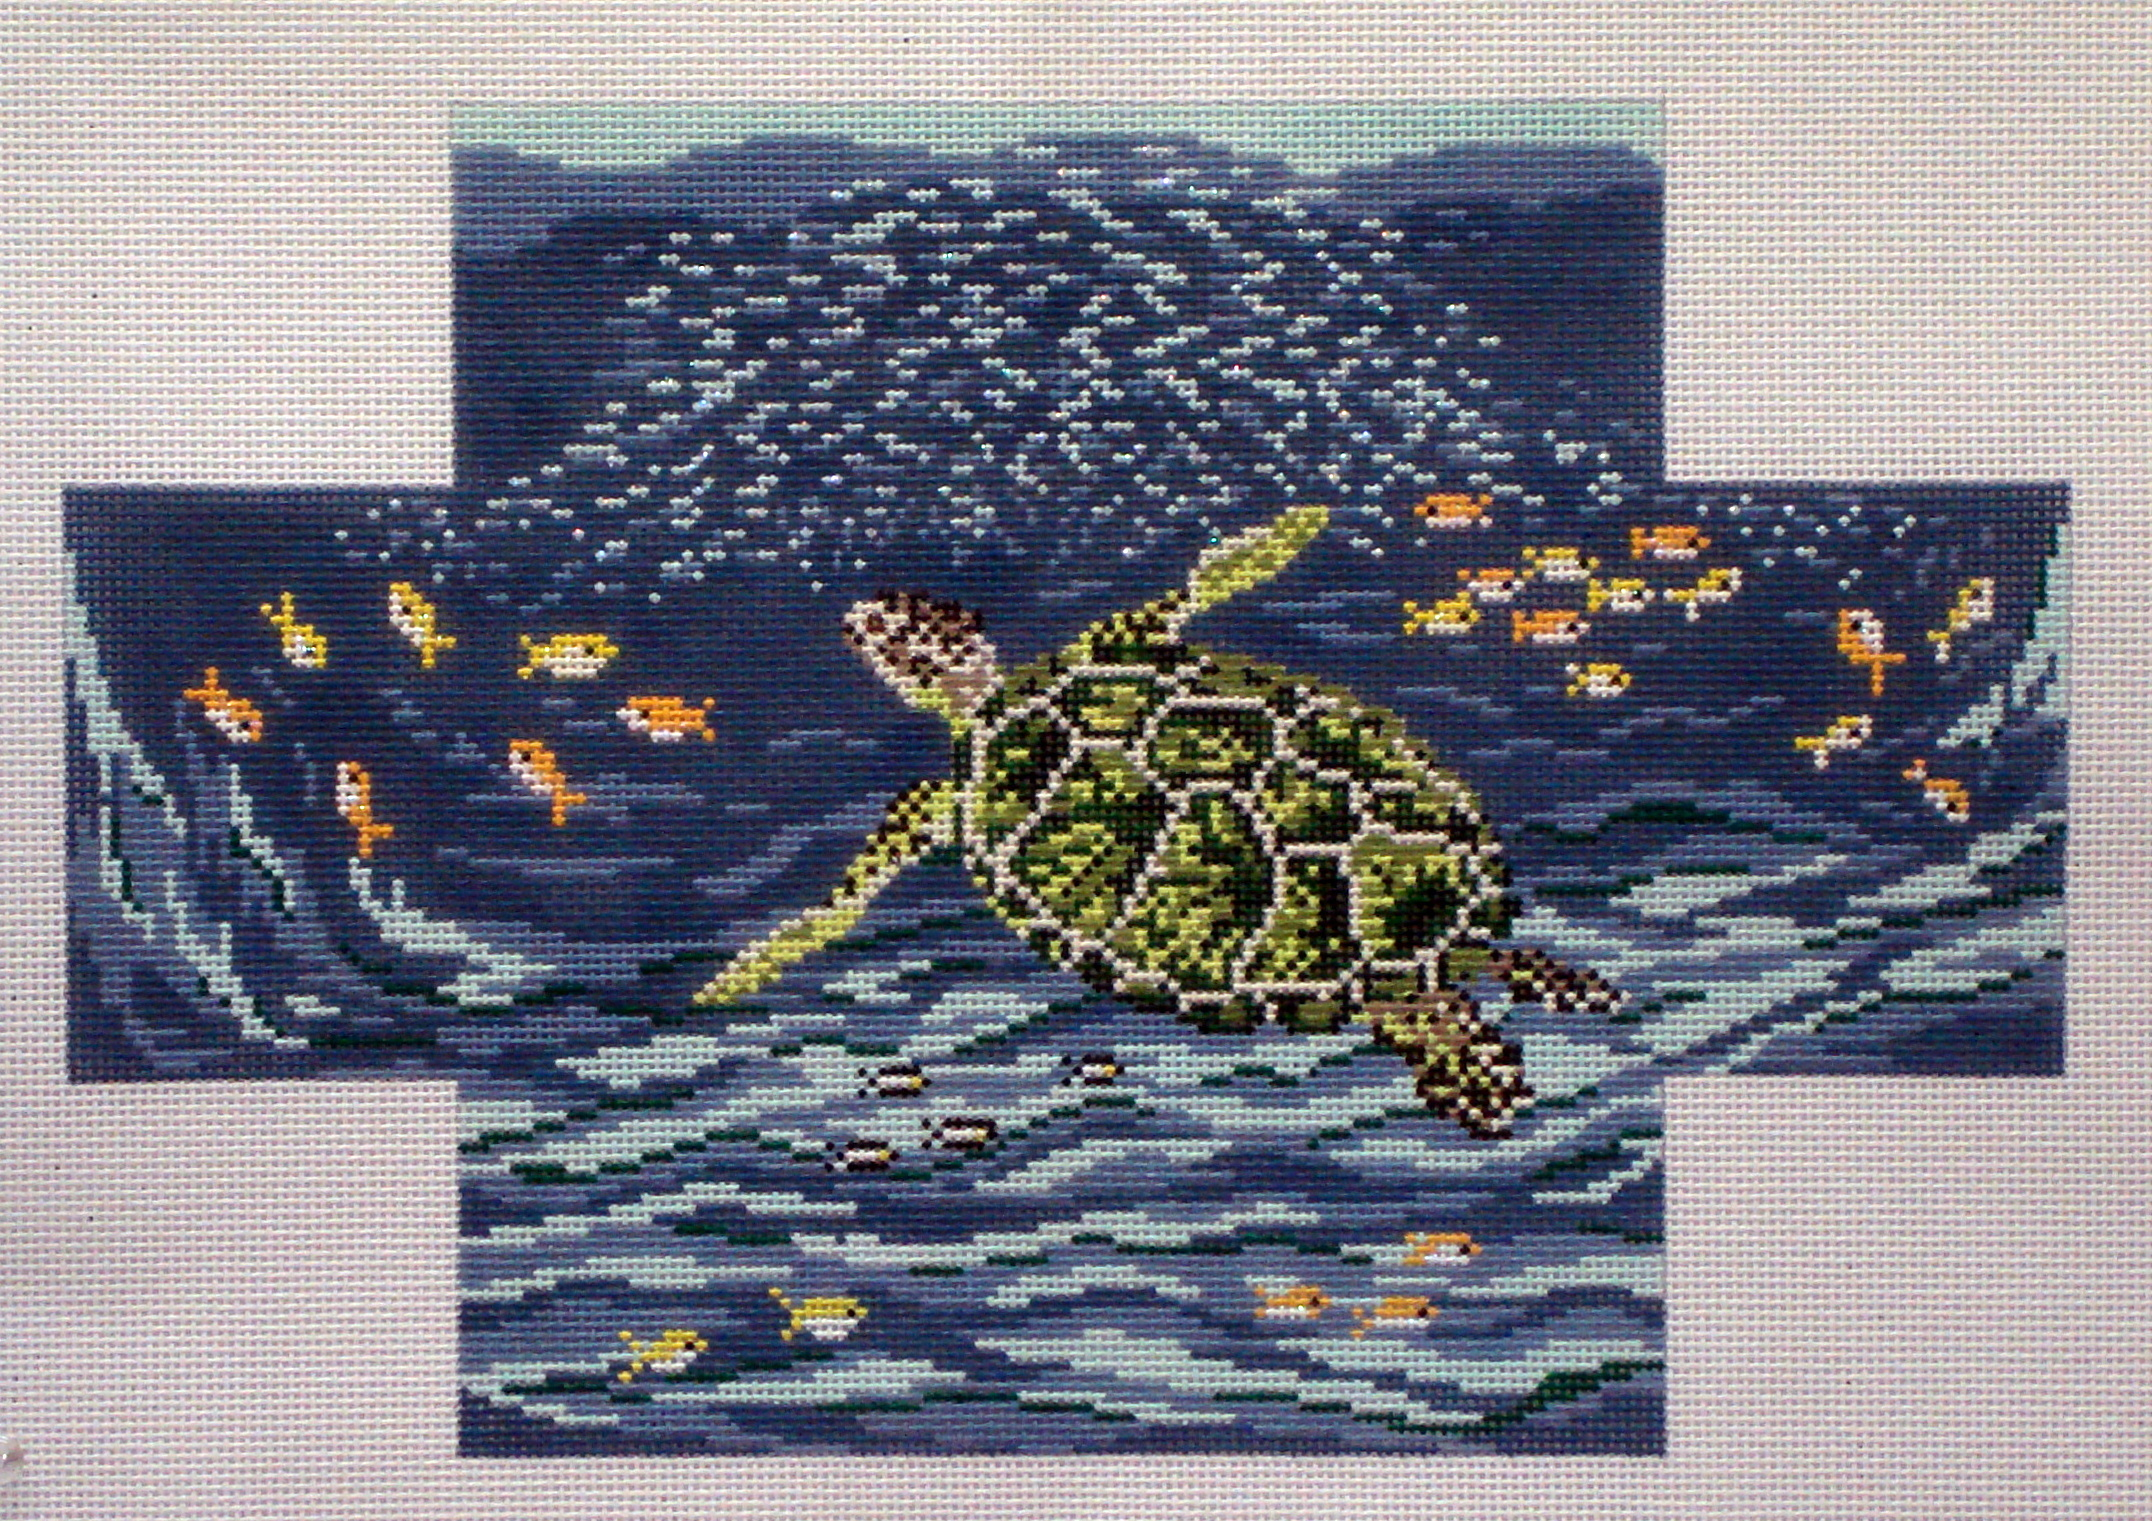 Sea Turtle Brick Cover      (handpainted byNeedle Crossing) 18*2706